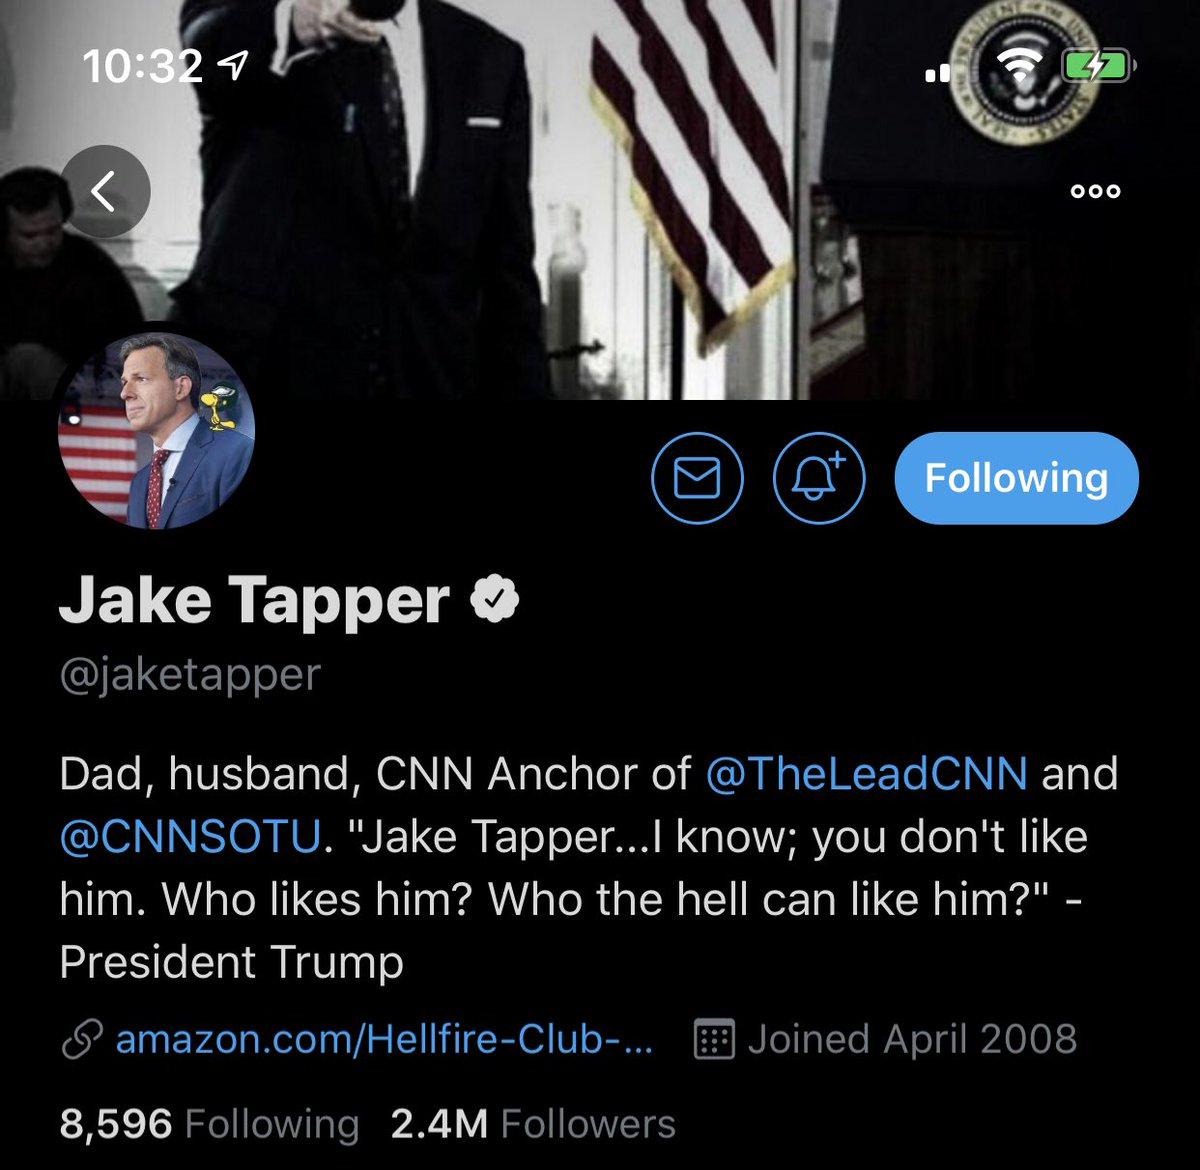 Lame. We always had a cordial relationship. He unfollowed me yesterday; he did once before after I criticized the townhall's award. He made it clear that if I am to be in his his good graces I'm not allowed to mention the horrible way his network treated me. Not how this works. https://t.co/LIaqWtAnpI